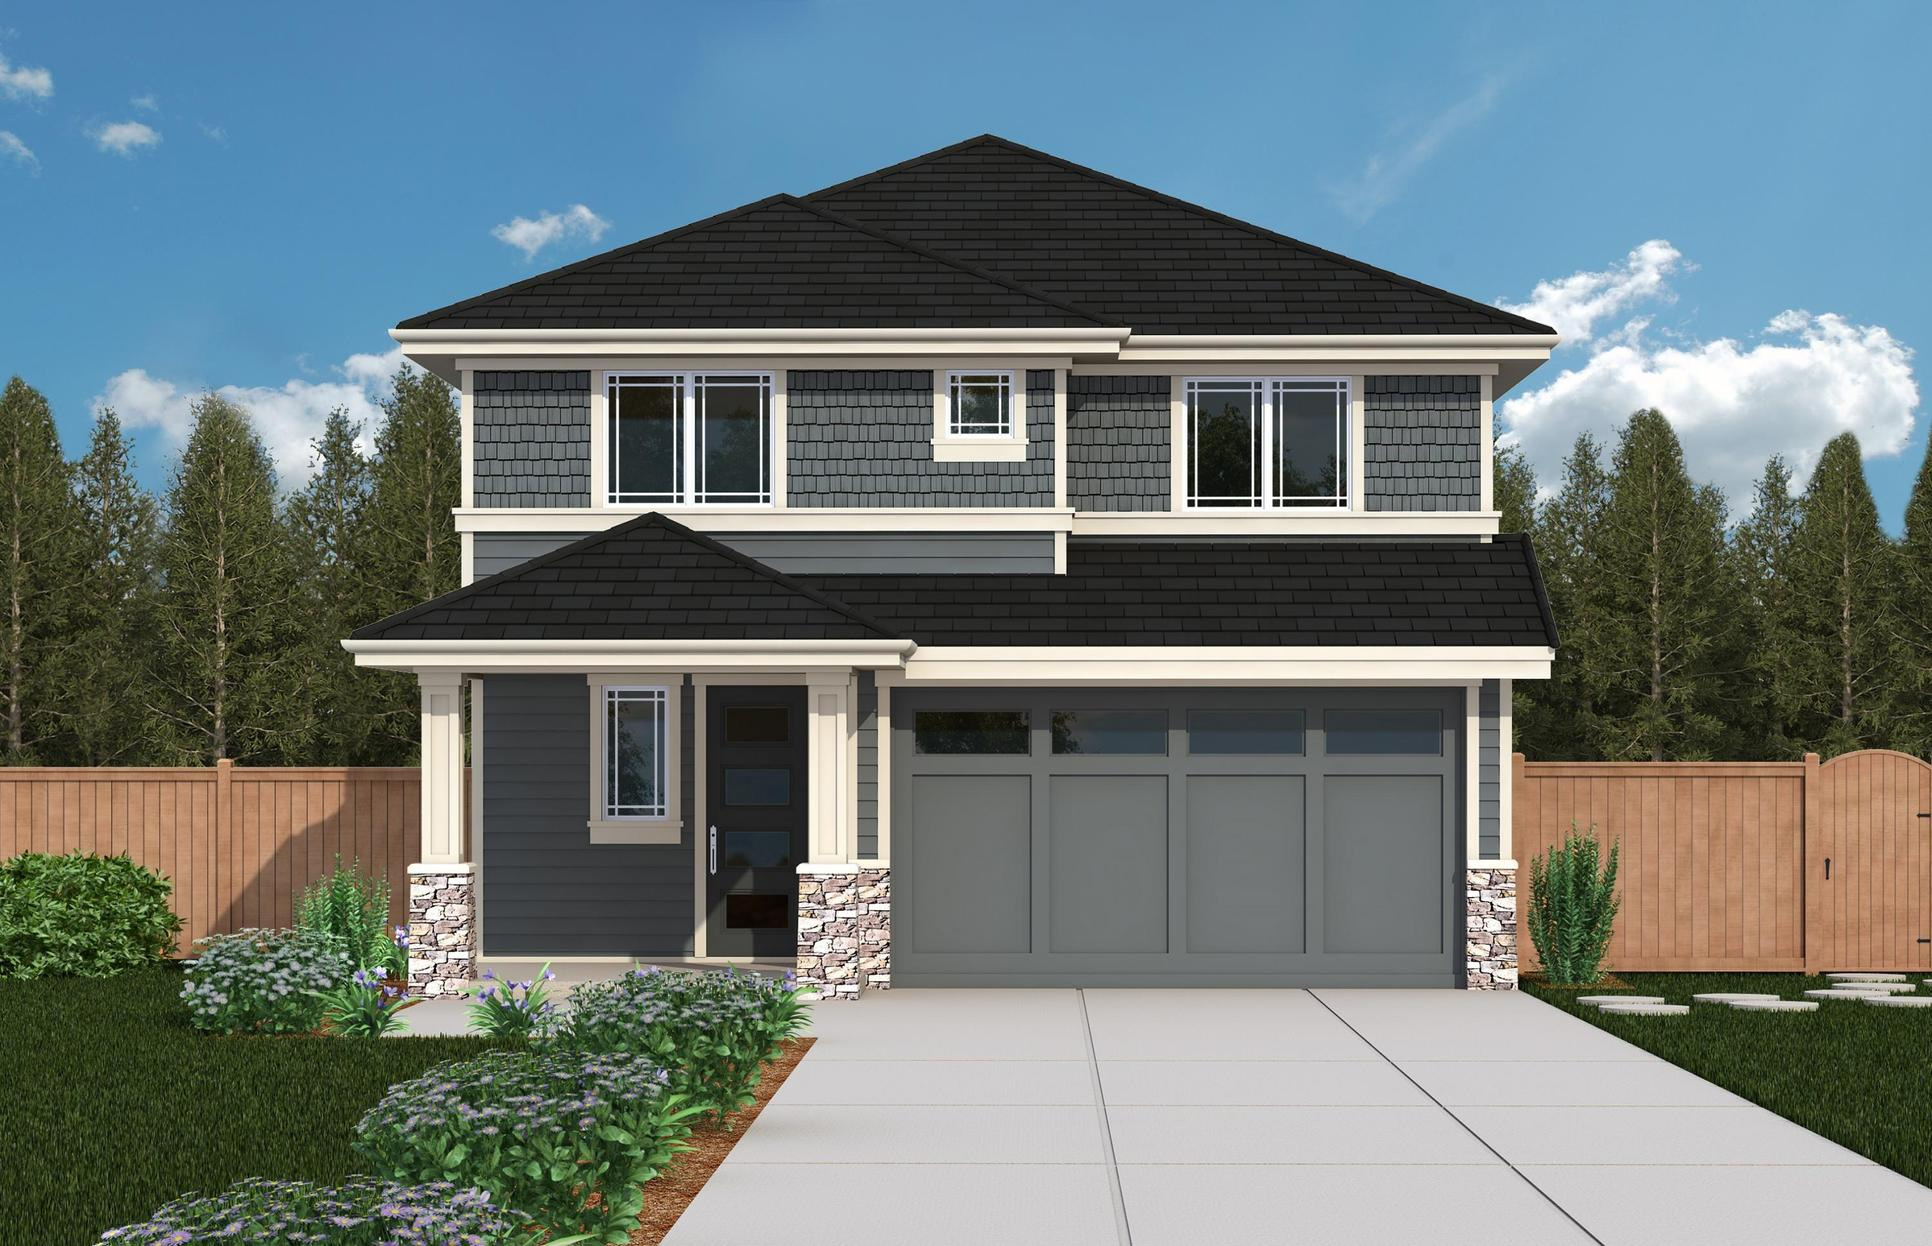 Exterior:CT 2265B - Elevation 1